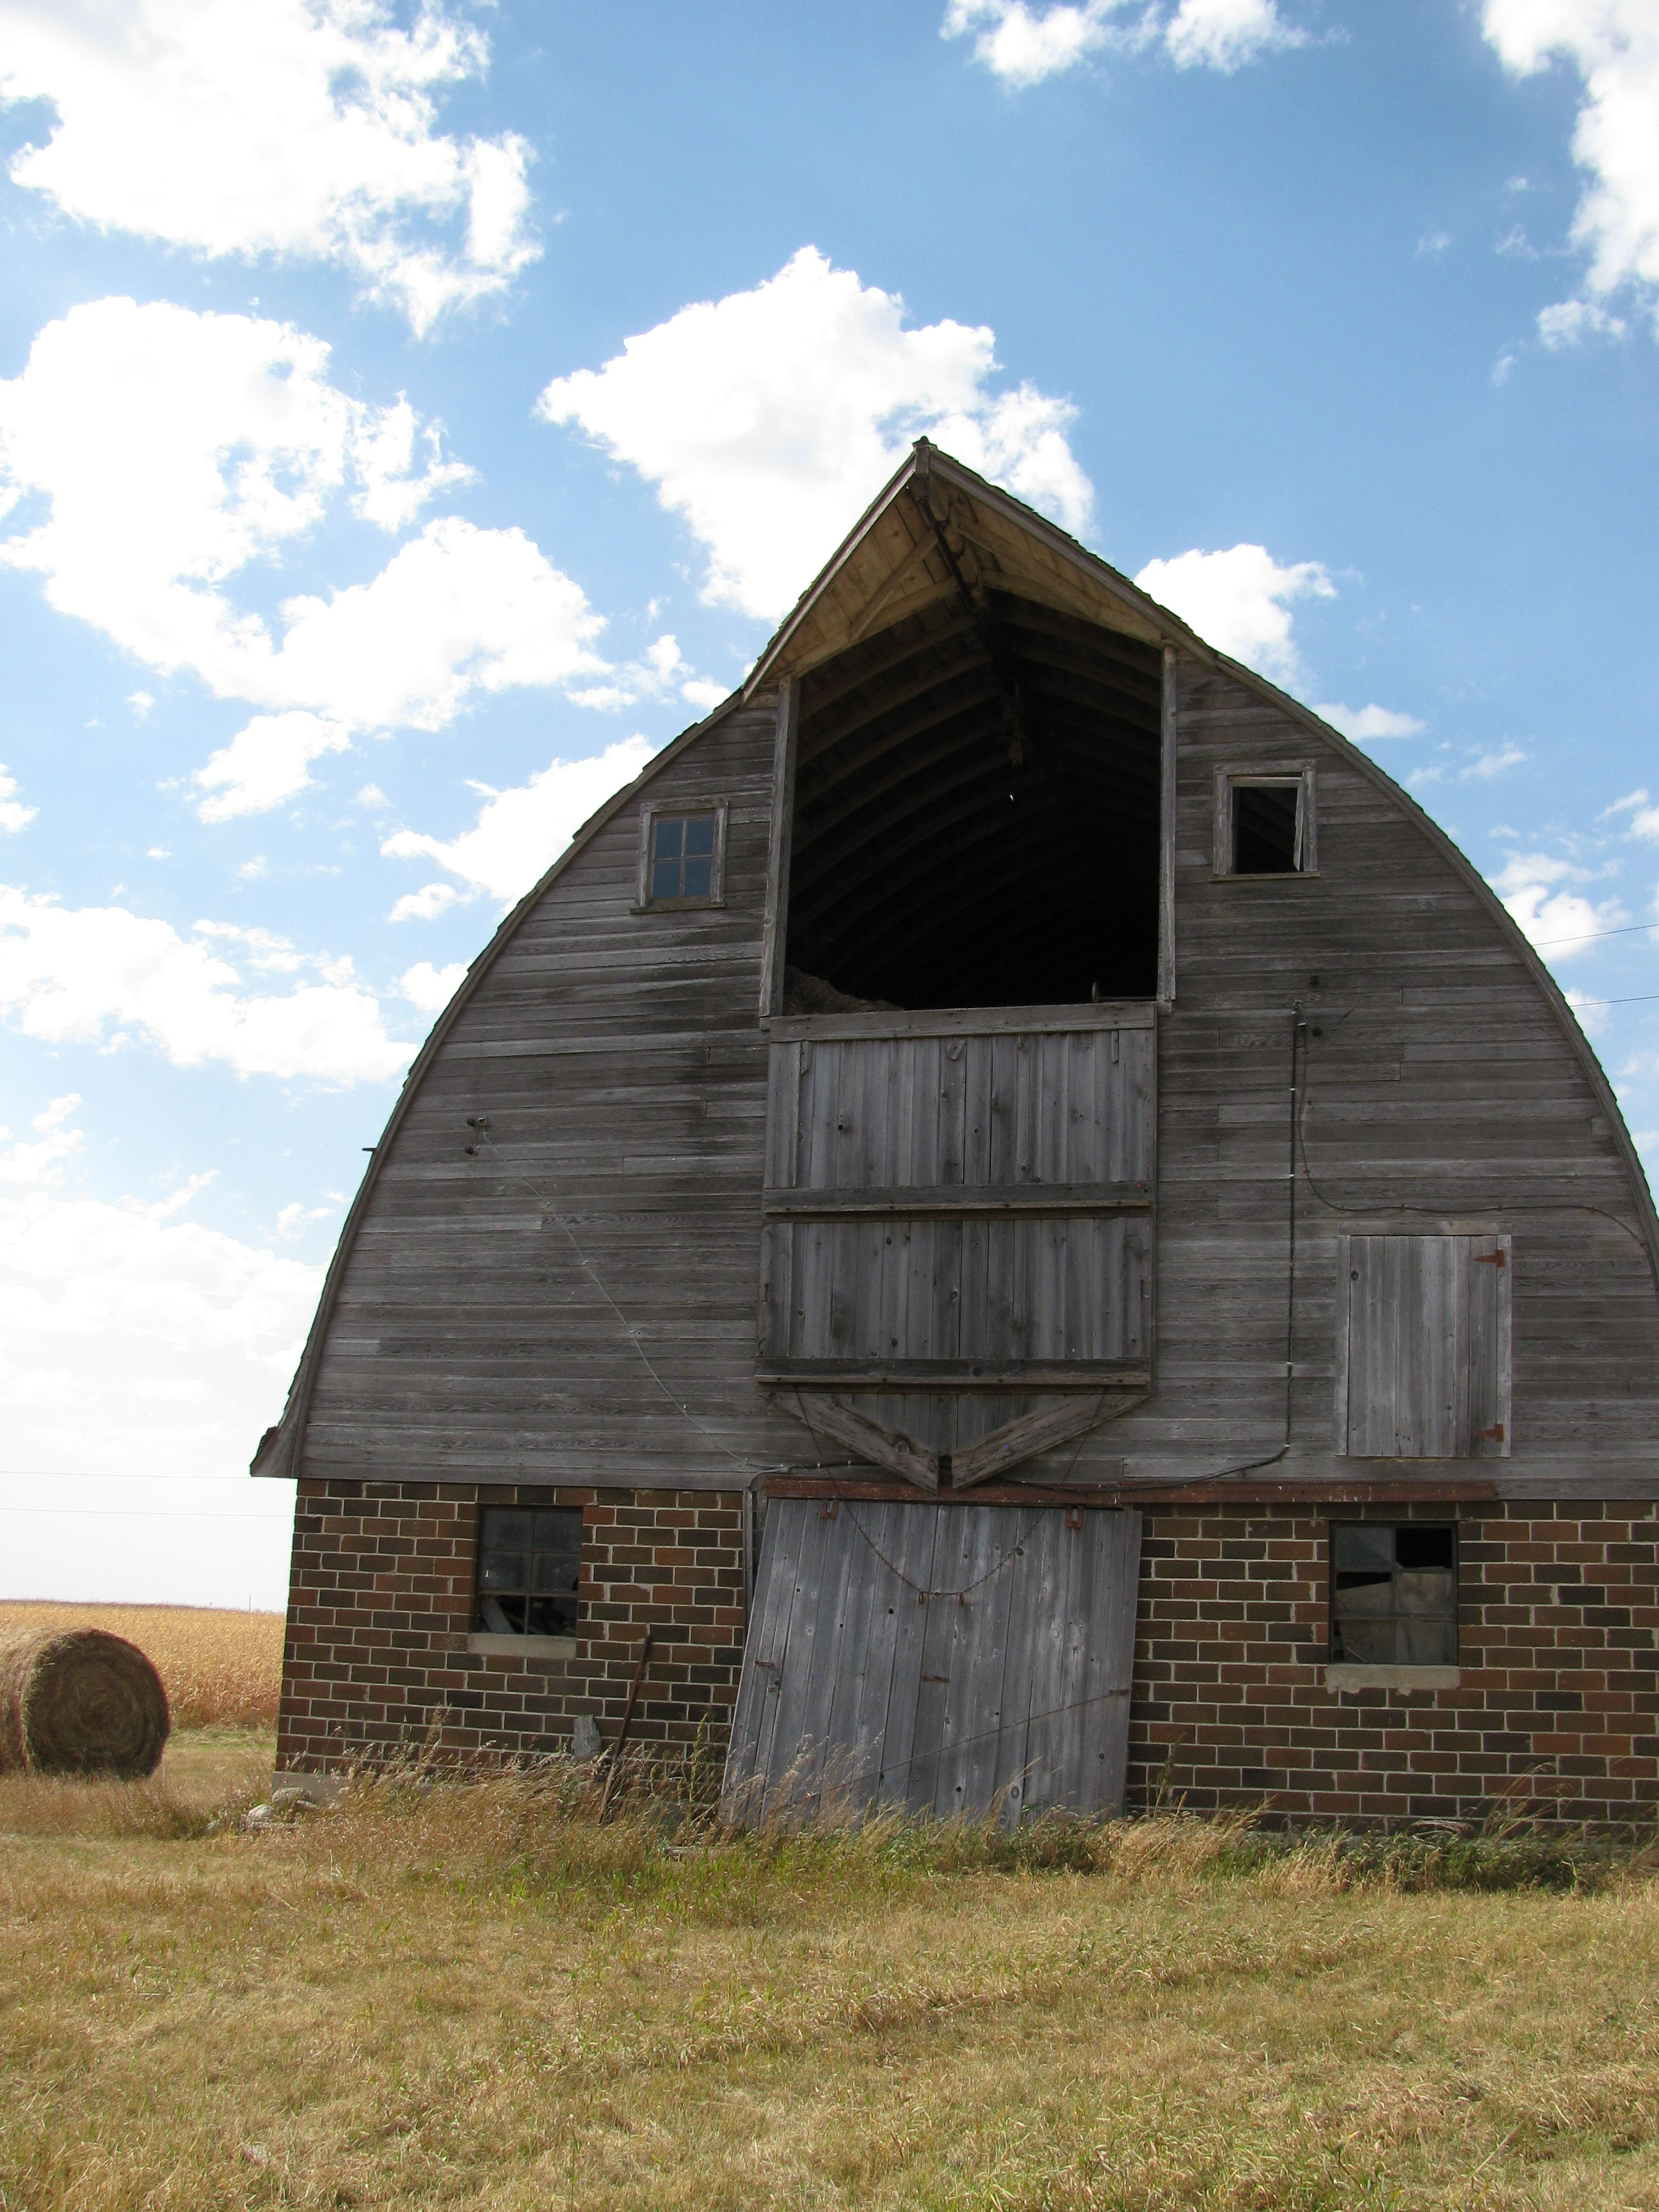 Barn in Minnesota coupon code nicesup123 gets 25 off at